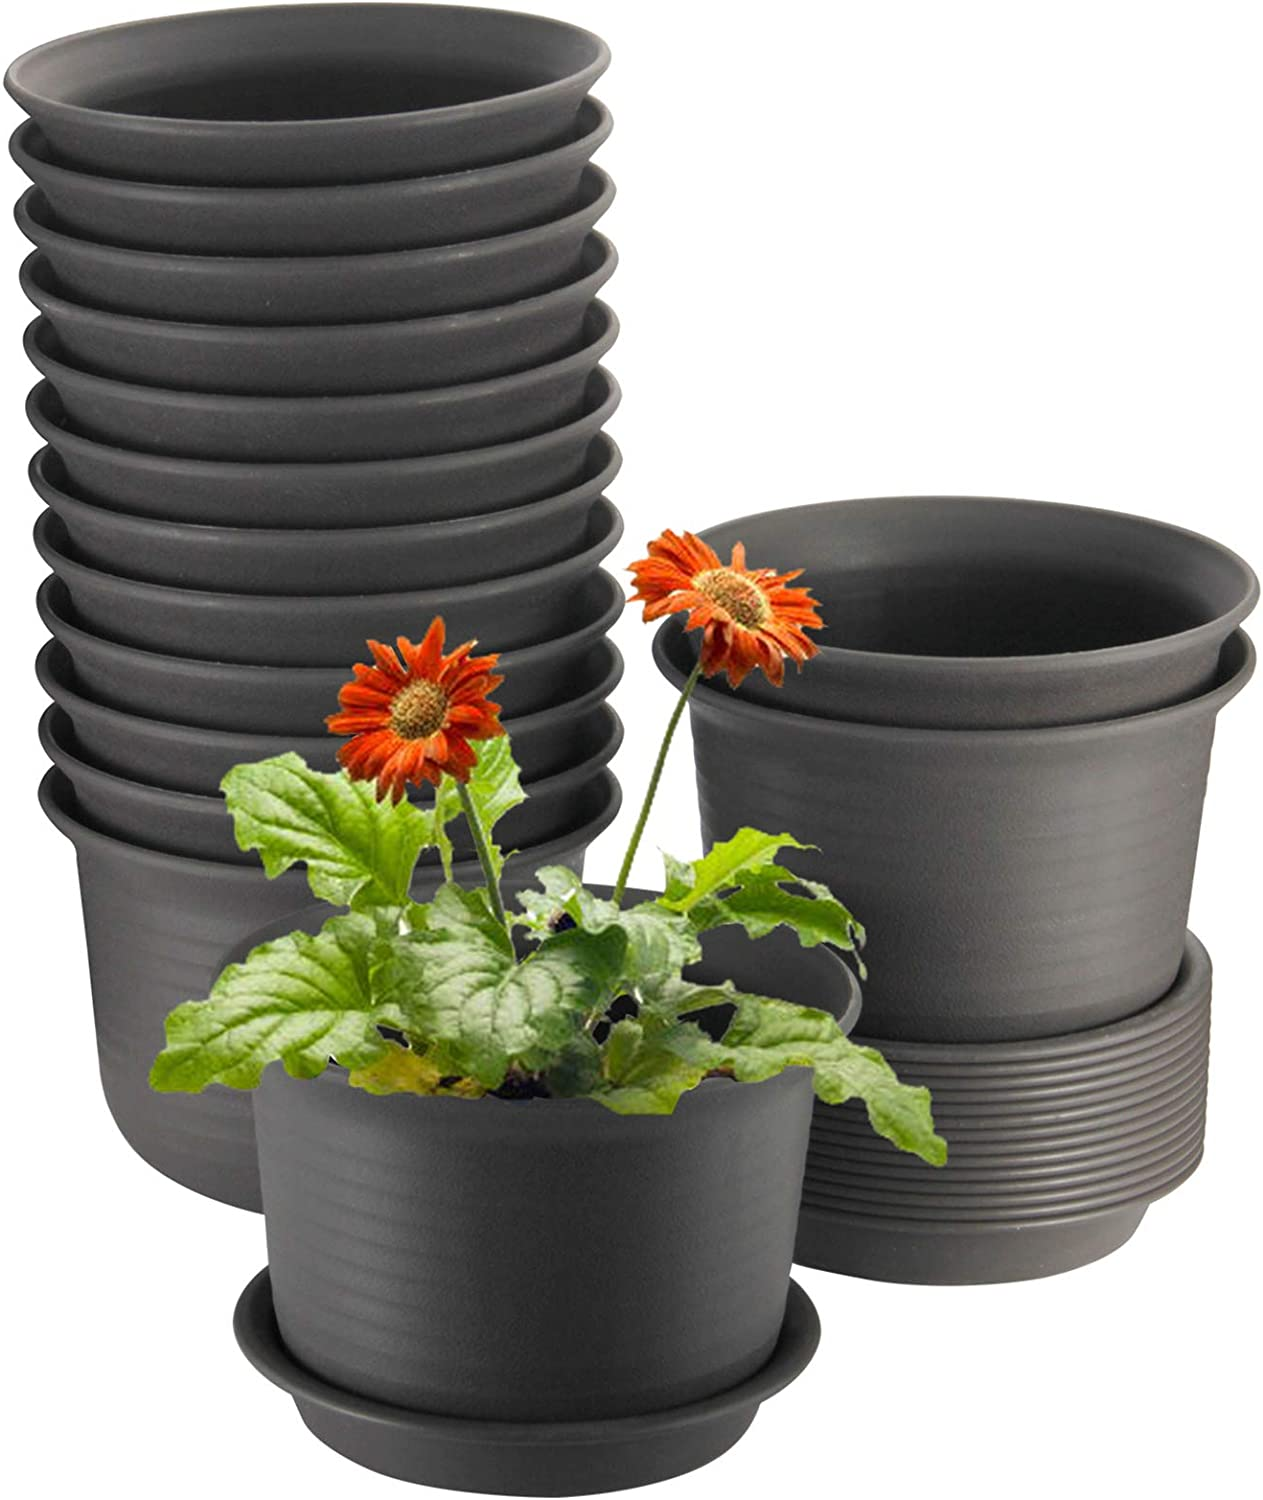 Plant Pots, ZOUTOG 6 inch Plastic Planters with Drainage Hole and Tray, Pack of 15 - Plants Not Included, Brown : Garden & Outdoor